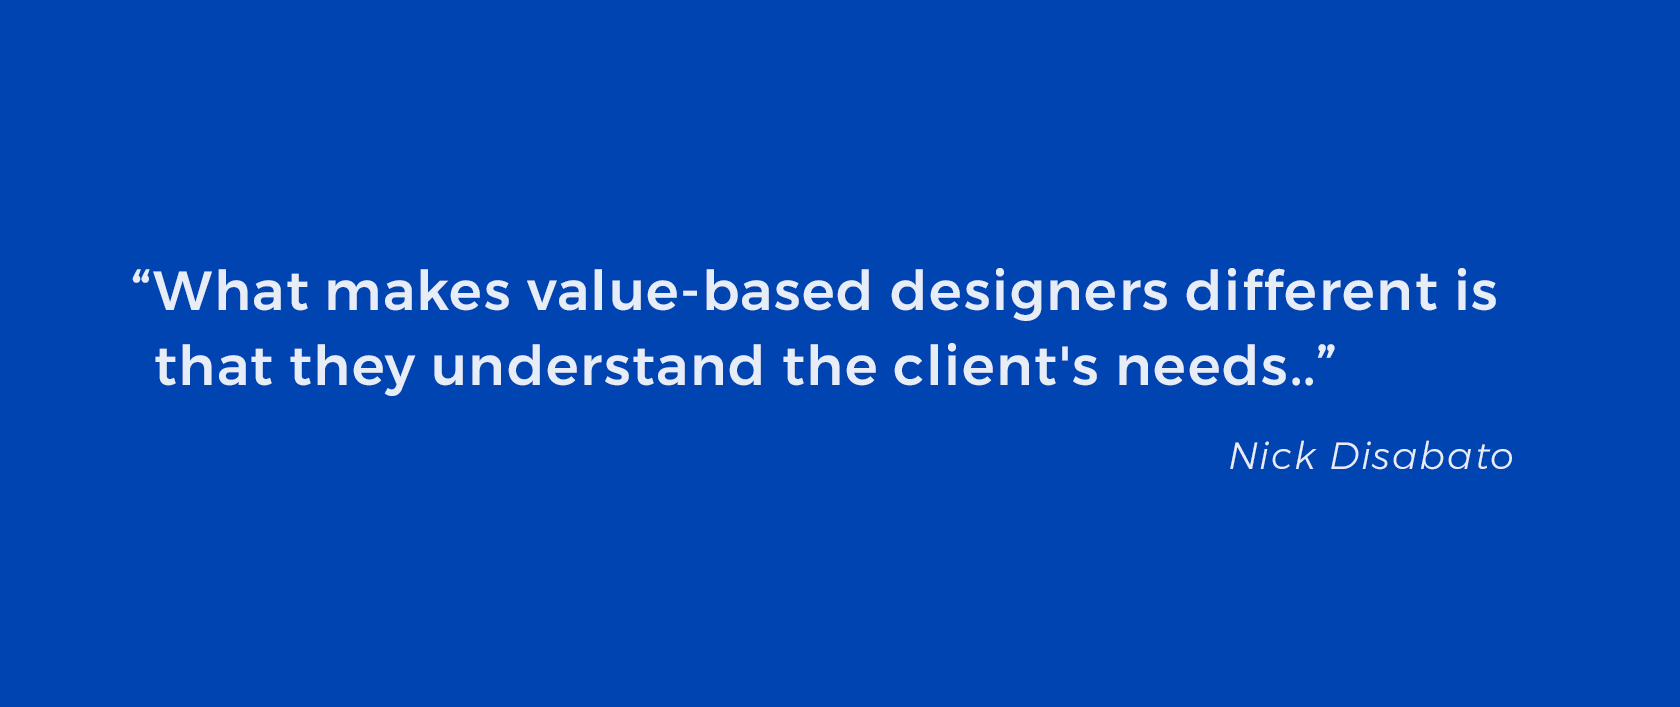 Value based design and how to be the best designer.